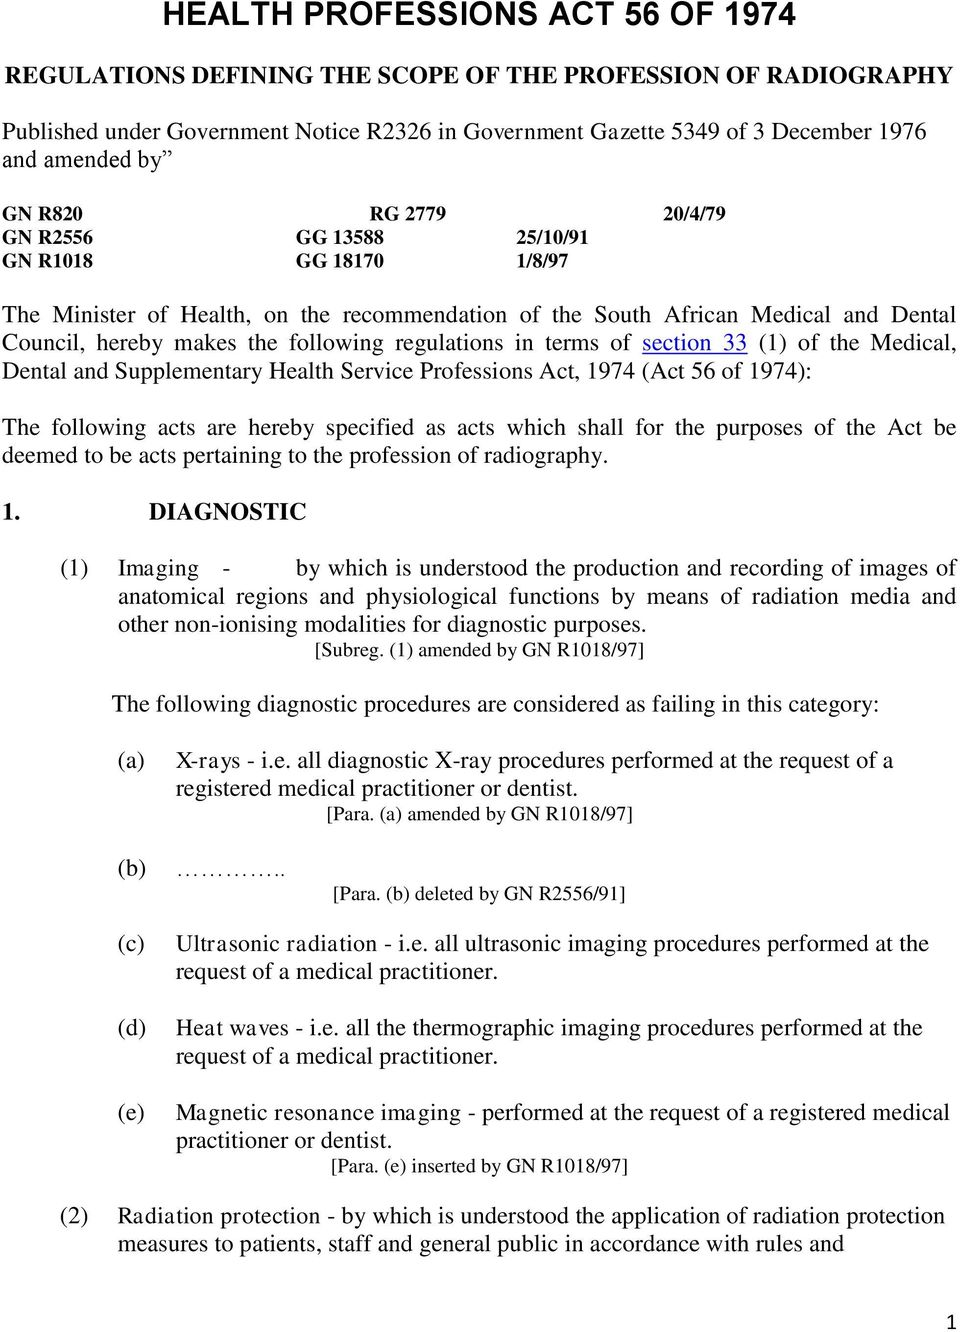 regulations in terms of section 33 (1) of the Medical, Dental and Supplementary Health Service Professions Act, 1974 (Act 56 of 1974): The following acts are hereby specified as acts which shall for